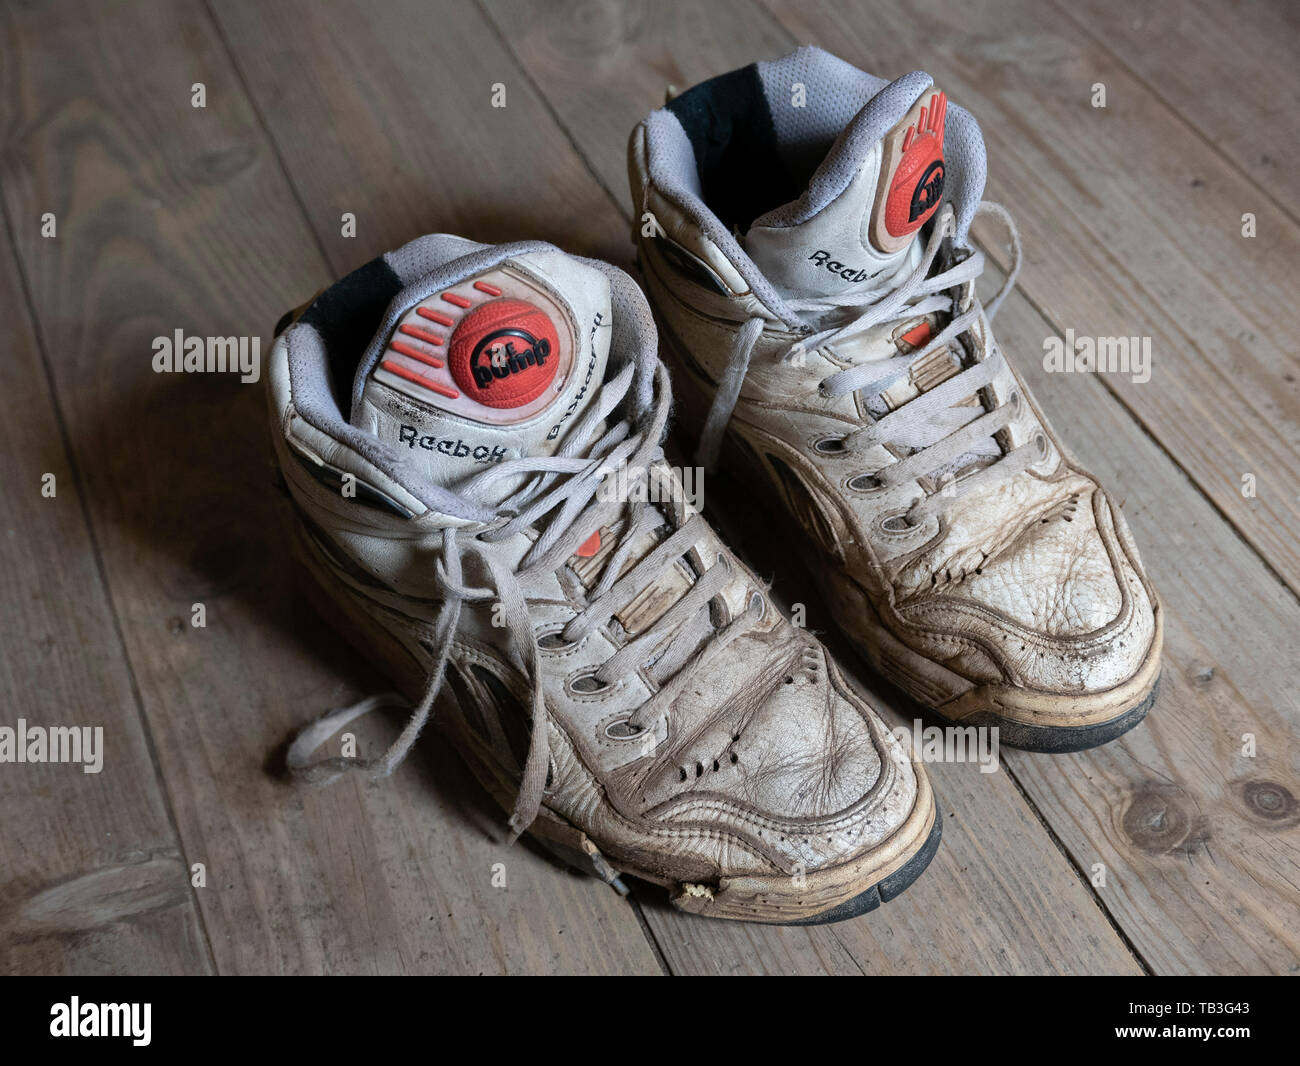 Rebajar Lluvioso víctima  Reebok Pumps High Resolution Stock Photography and Images - Alamy